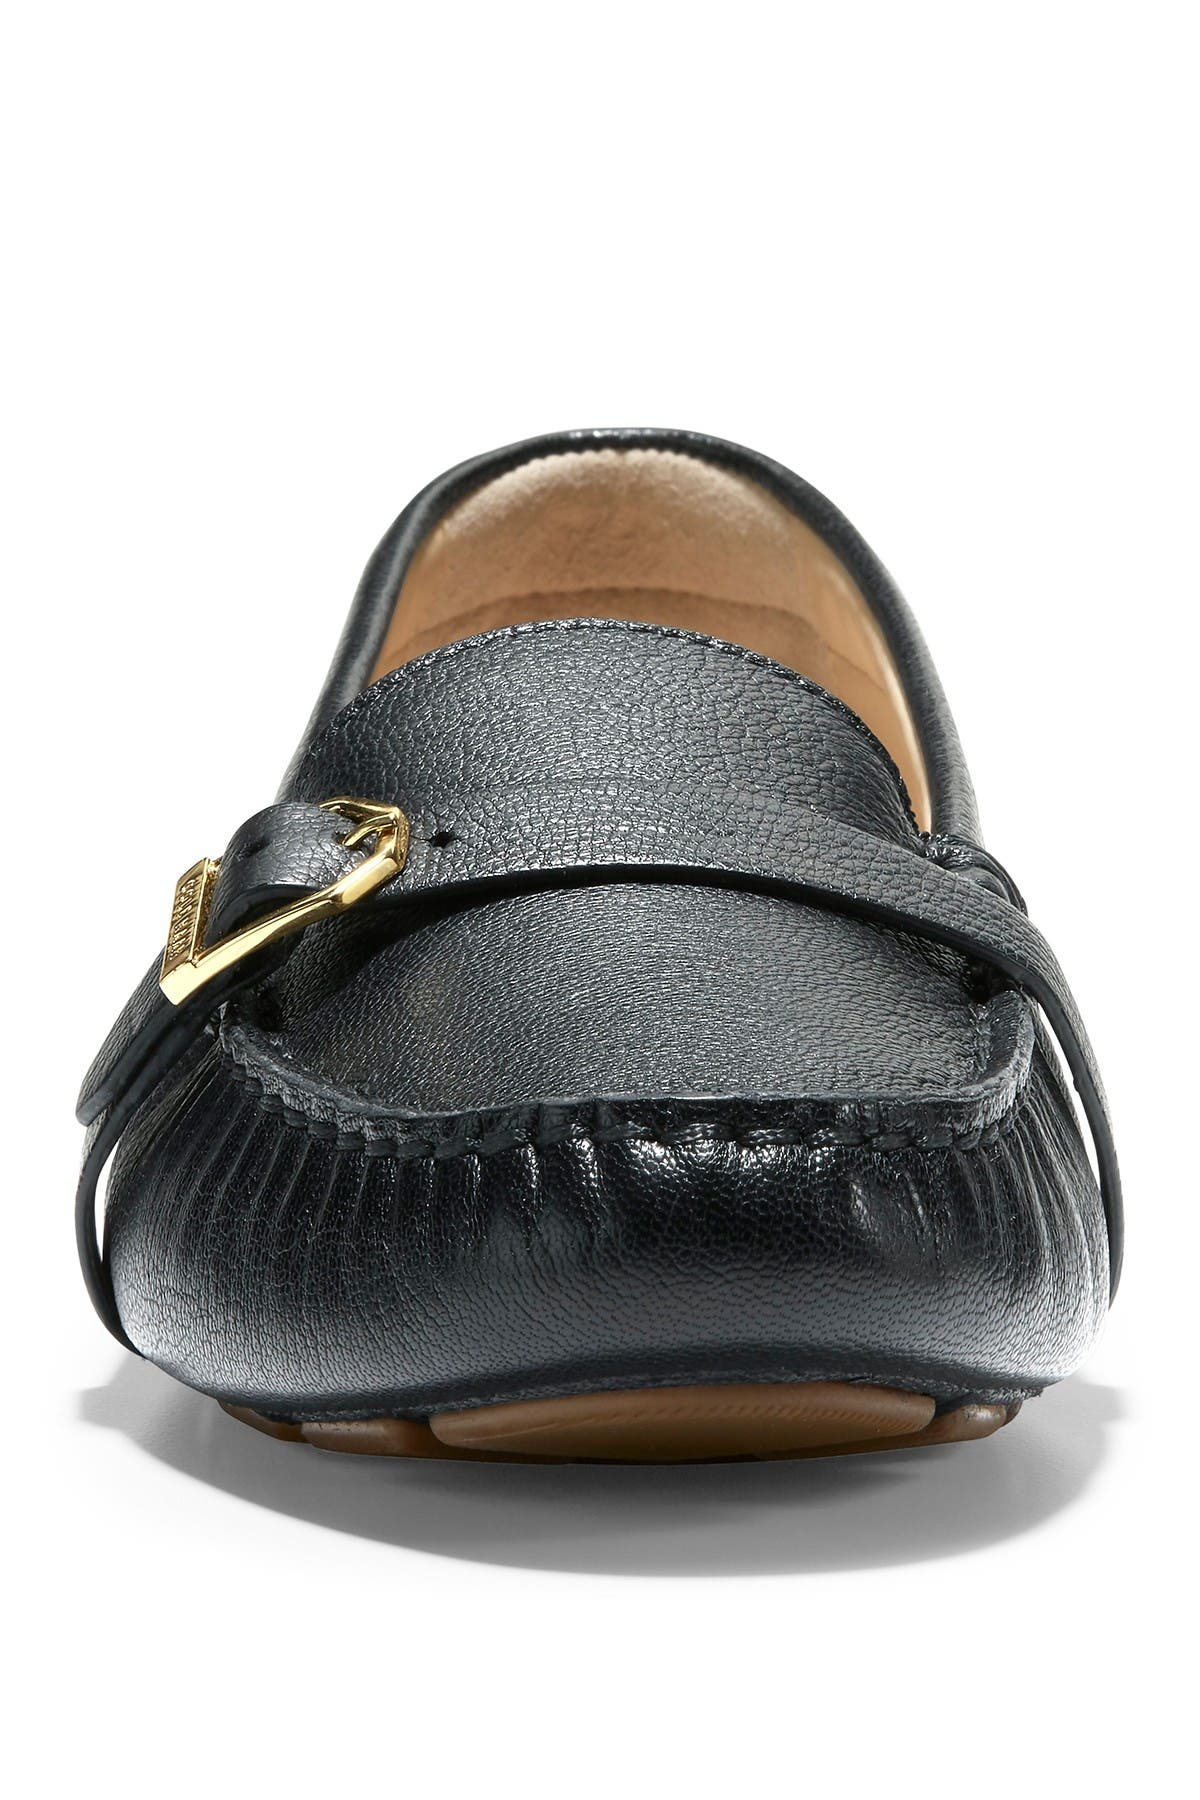 Image of Cole Haan Emely Buckled Loafer